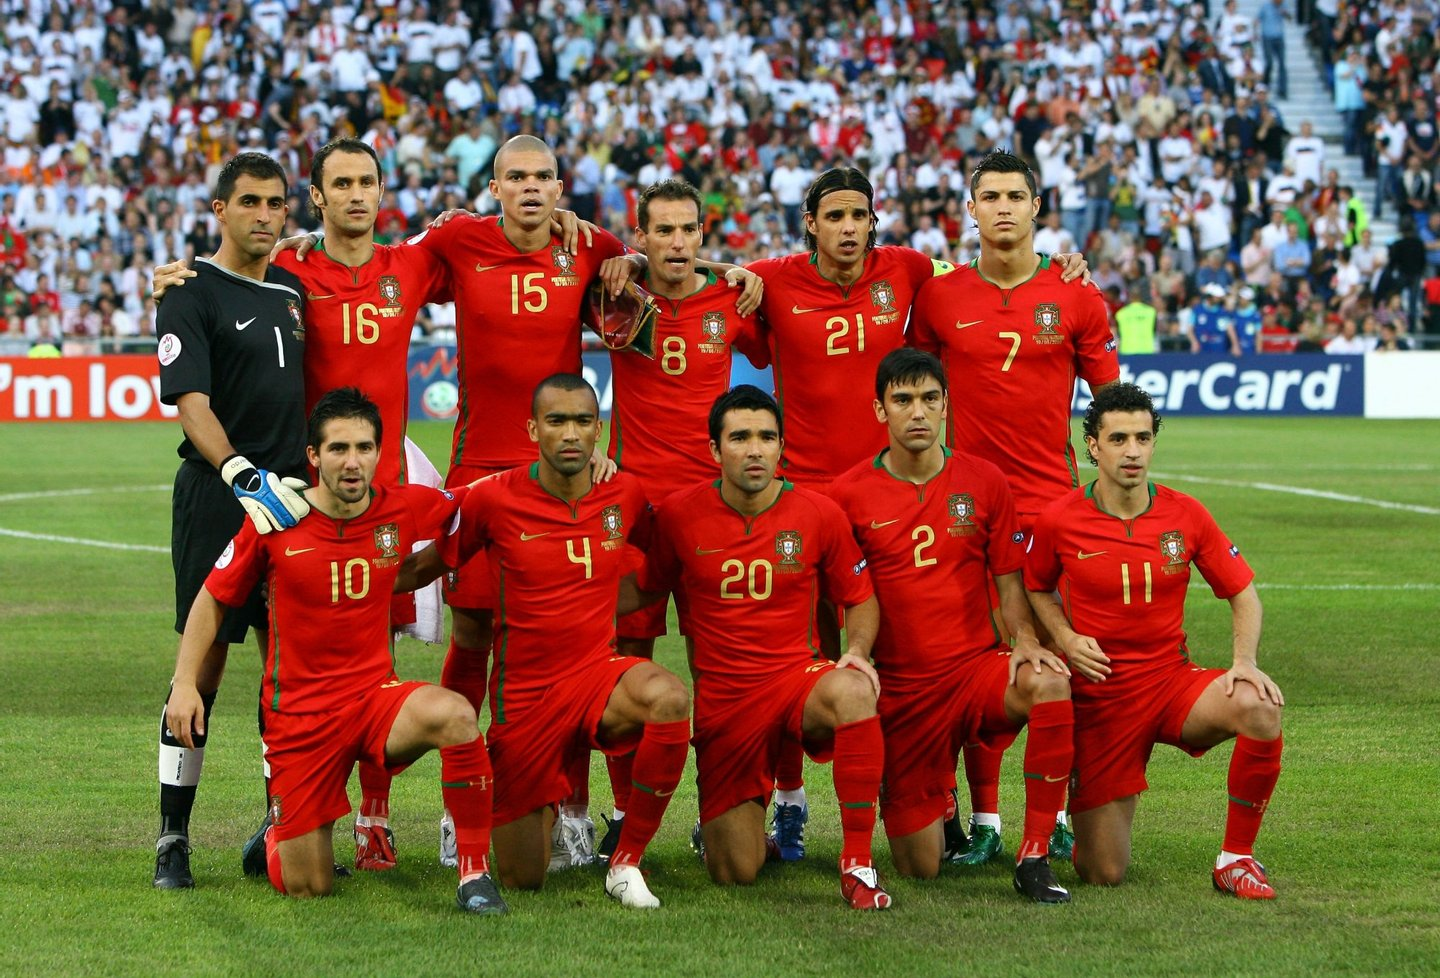 BASEL, SWITZERLAND - JUNE 19: The Portugal team pose during the UEFA EURO 2008 Quarter Final match between Portugal and Germany at St. Jakob-Park on June 19, 2008 in Basel, Switzerland. (Photo by Alex Livesey/Getty Images)